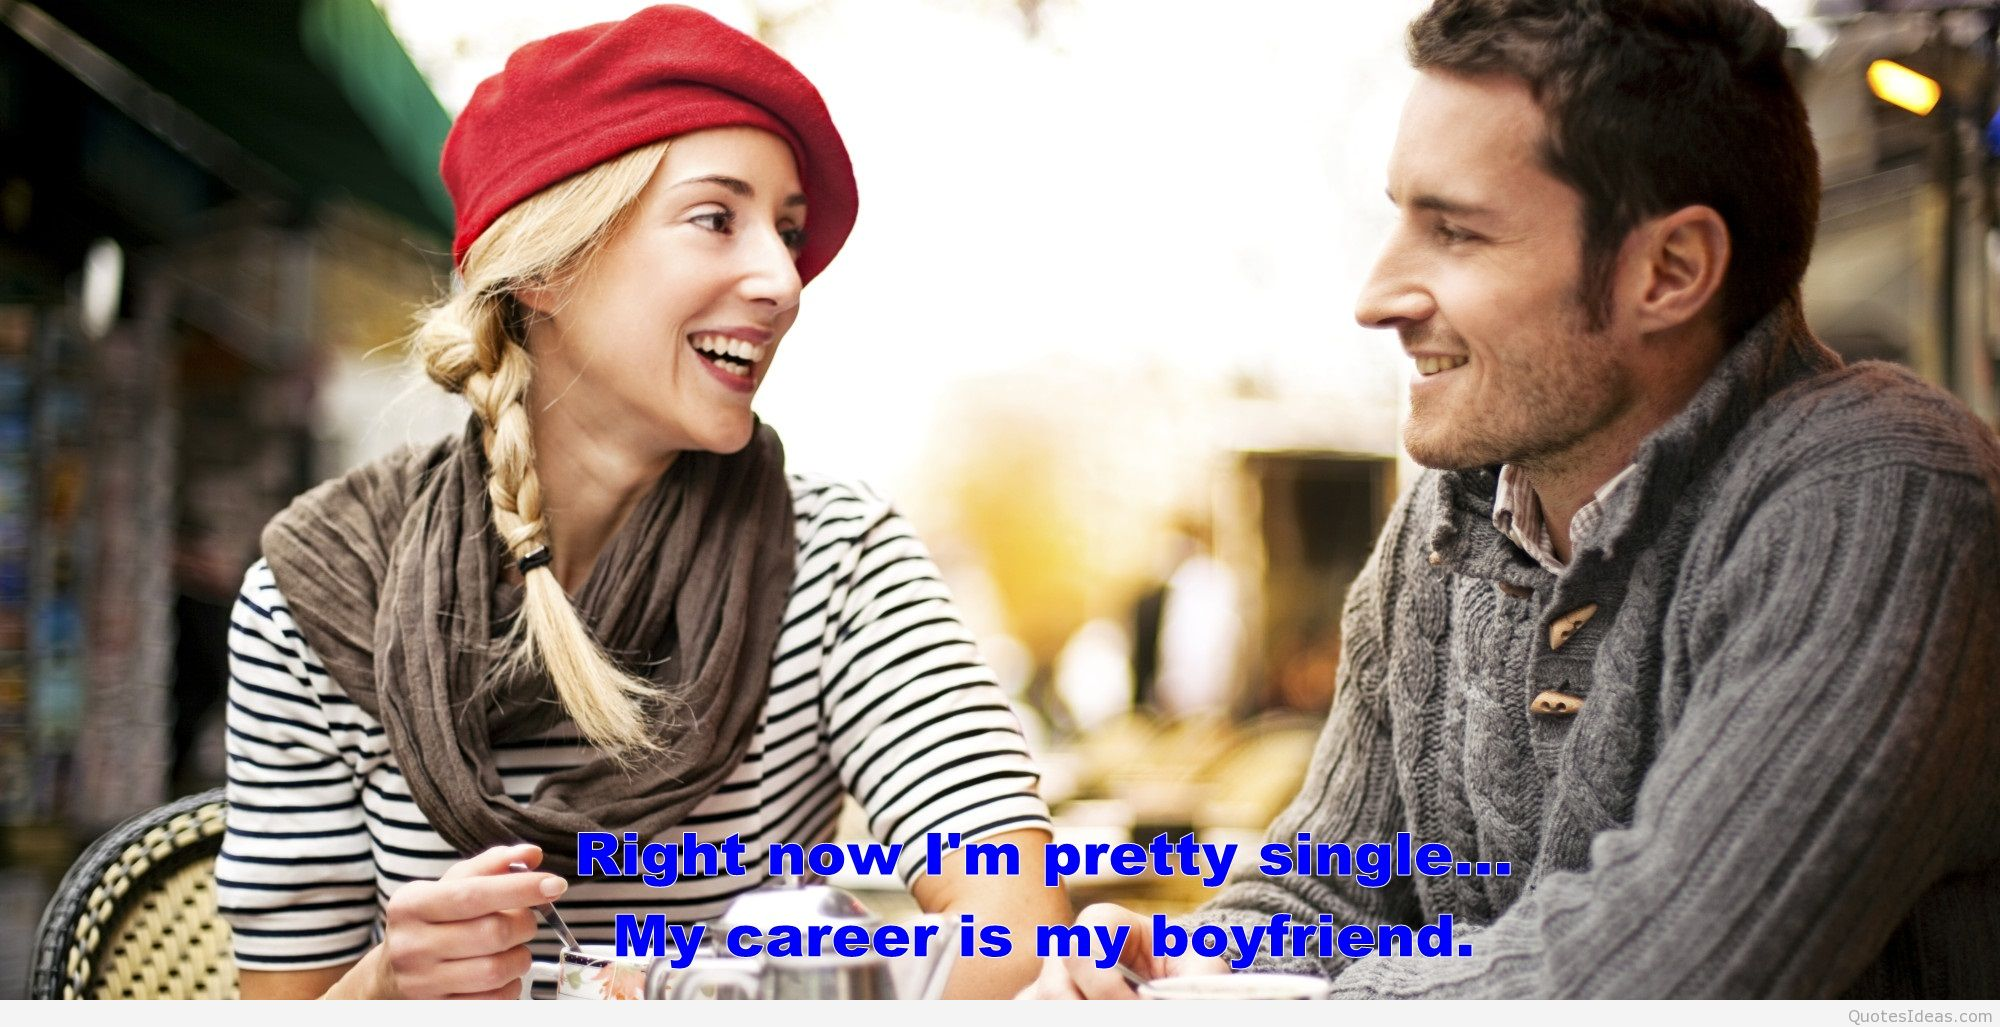 speed dating funny quotes Here are some of the most hilarious dating quotes and one liners from the likes of jerry seinfeld and groucho marx 36 really funny quotes about dating curated by.